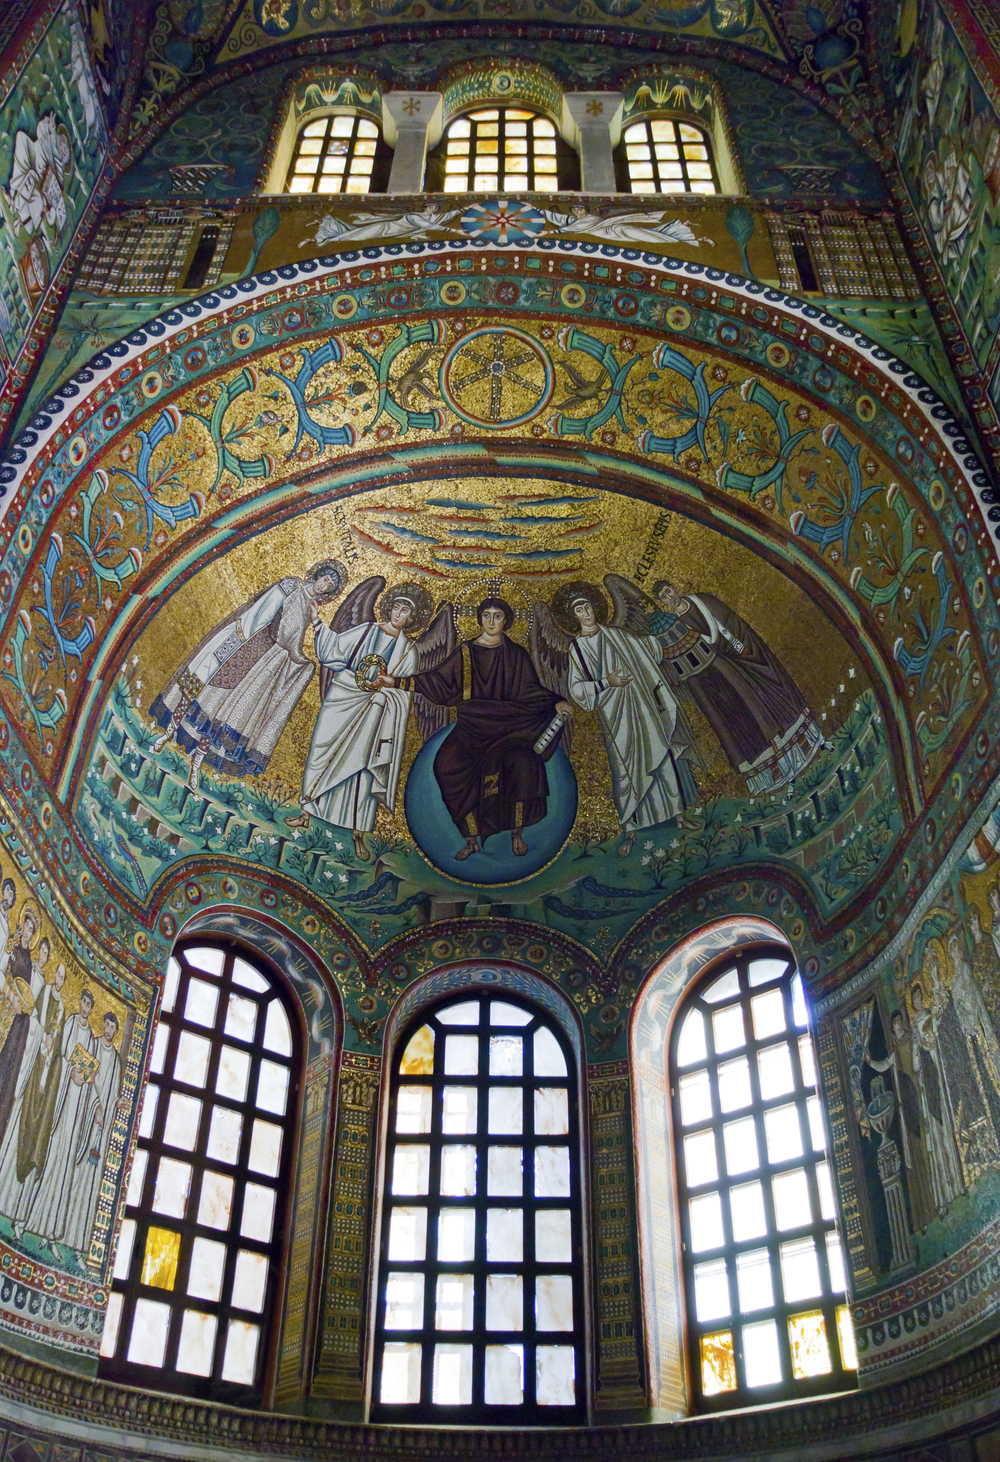 Basilica San Vitale, Ravenna, Italy  (the lilies above the windows served as the inspiration for my work at The Ravenna Mosaic School)